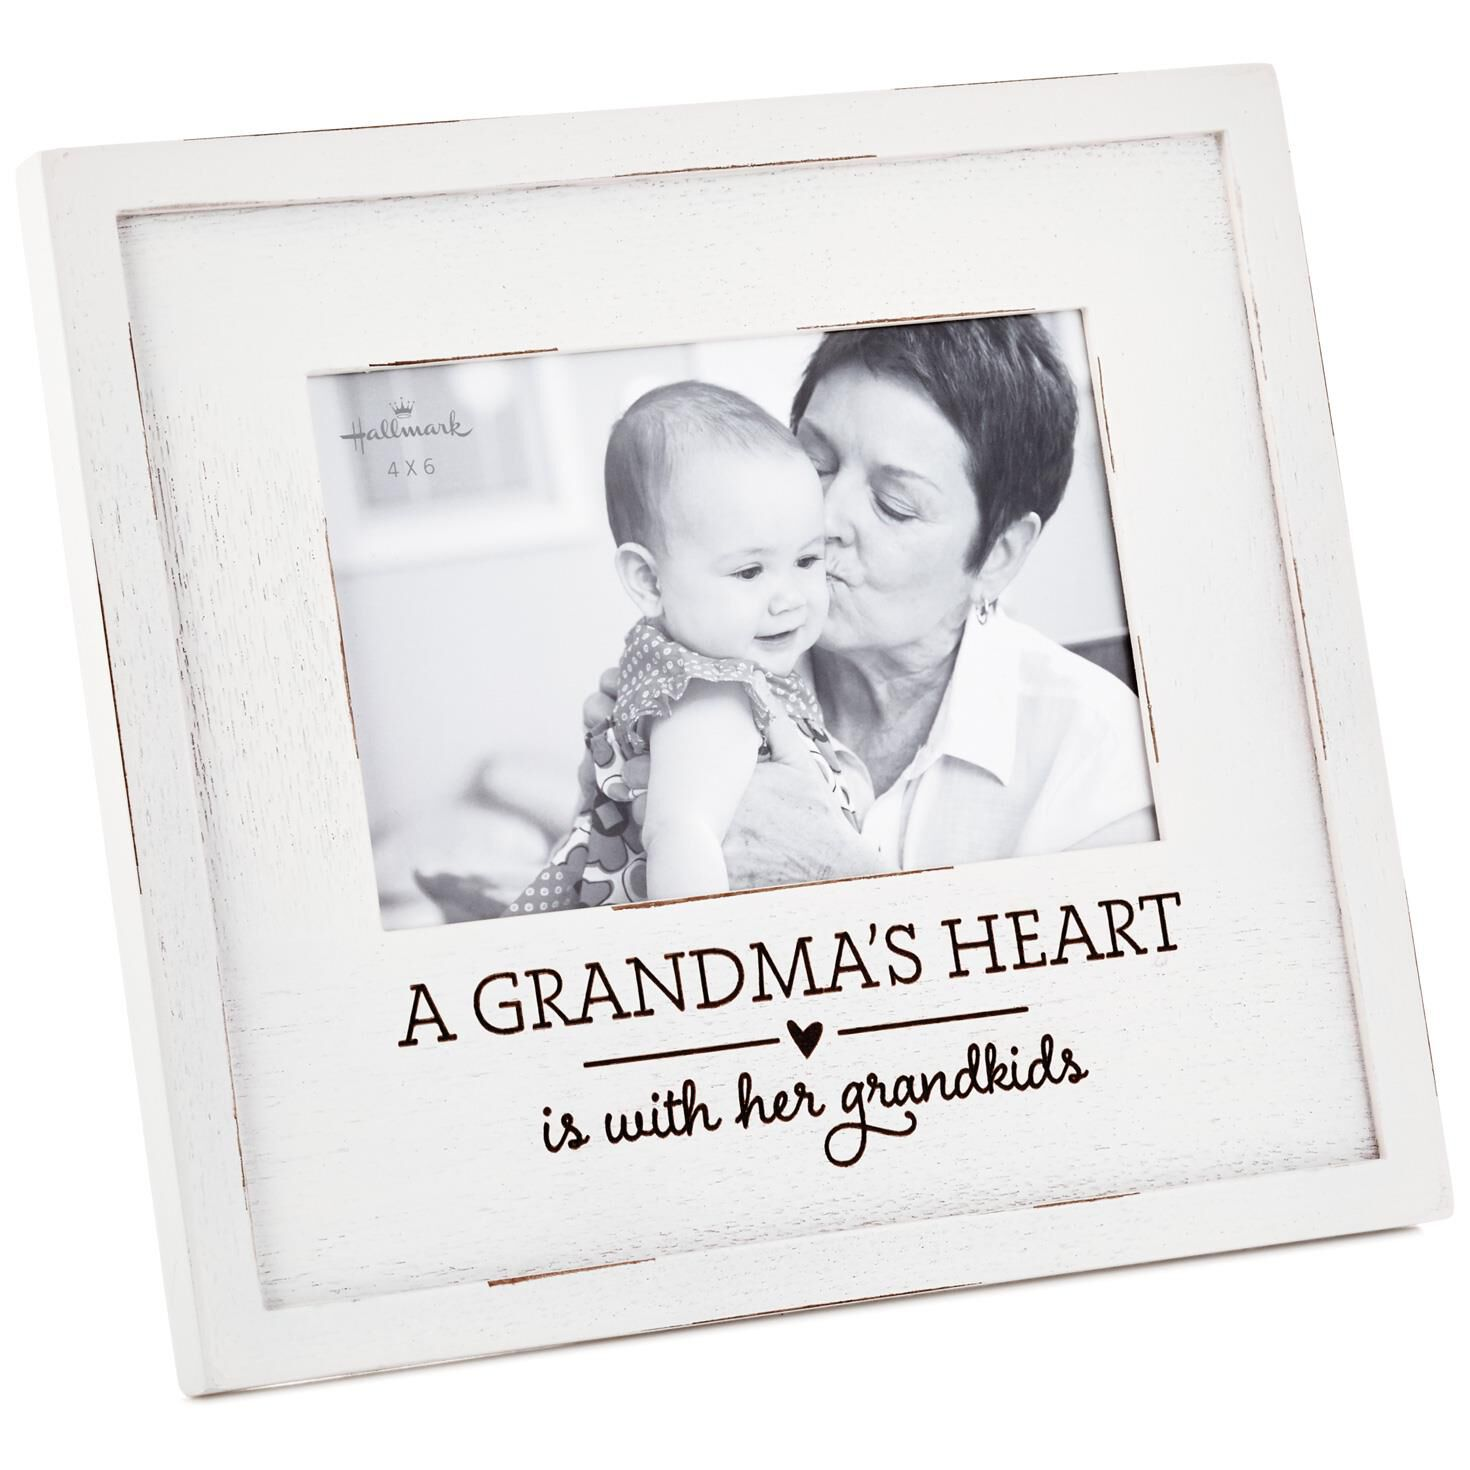 A Grandma\'s Heart Wood Picture Frame, 4x6 - Picture Frames - Hallmark